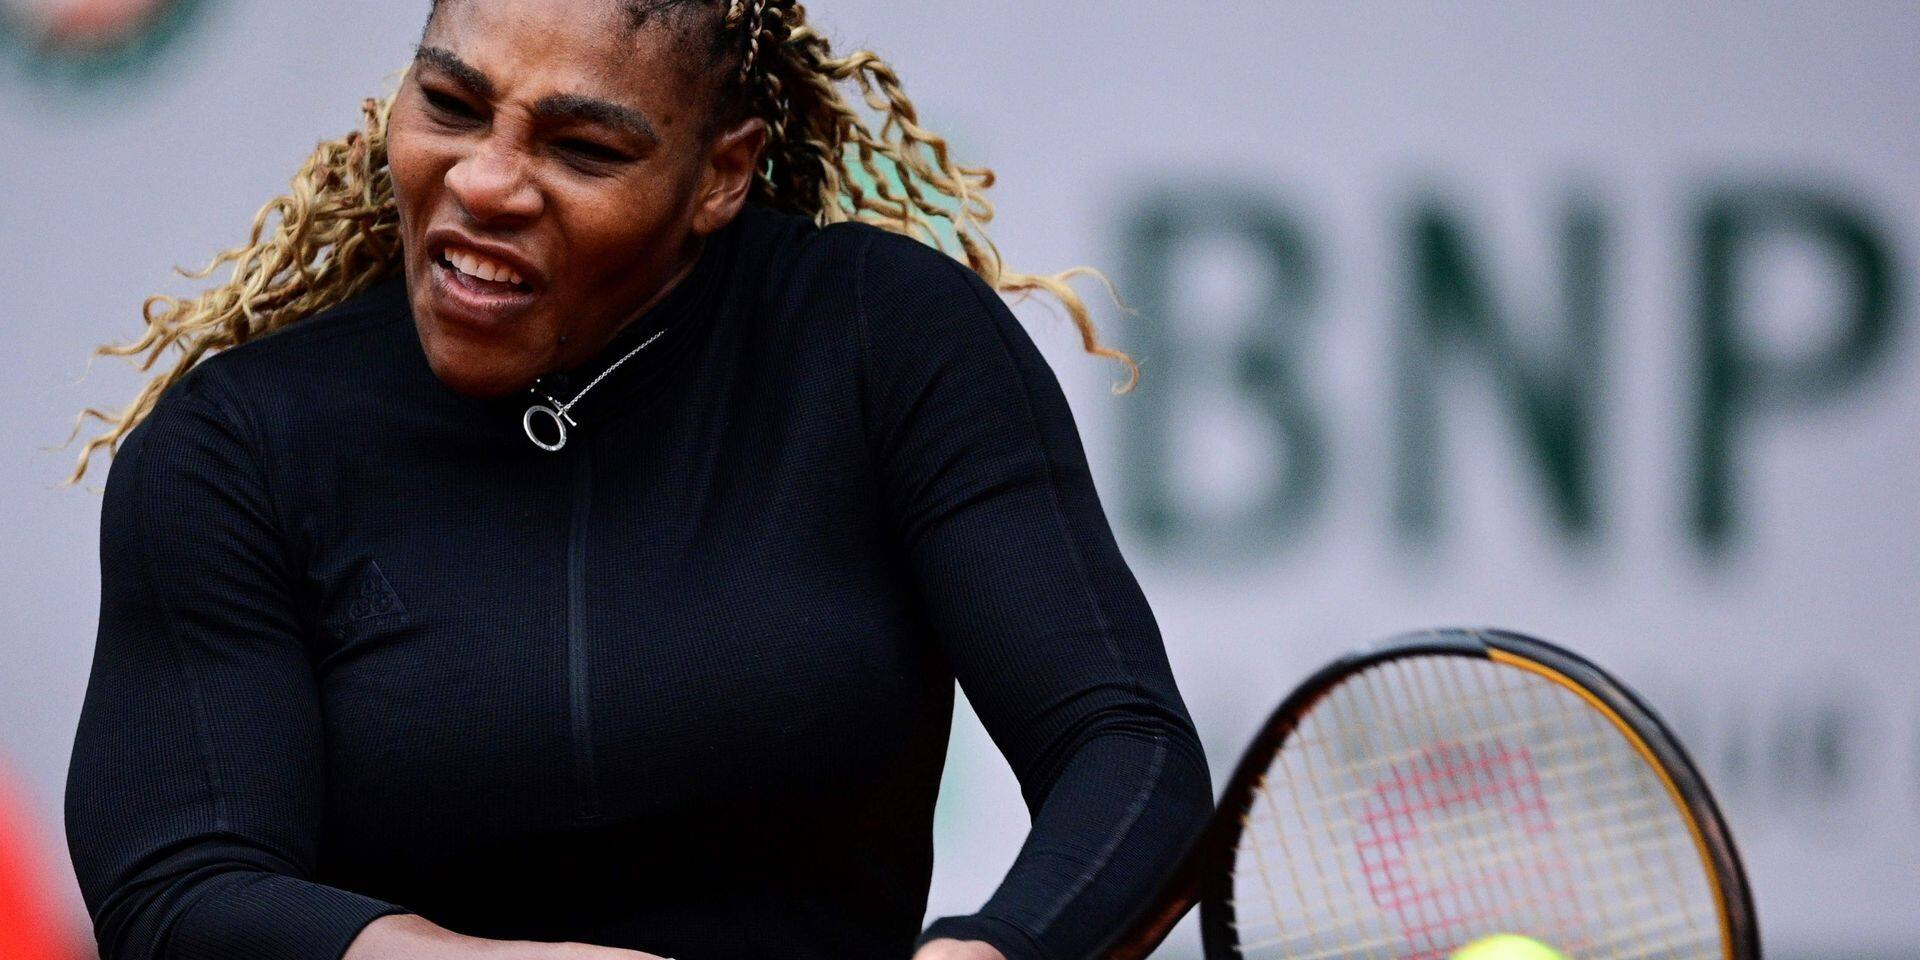 Serena Williams qualifiée, Marketa Vondrousova, finaliste 2019, battue dès le premier tour